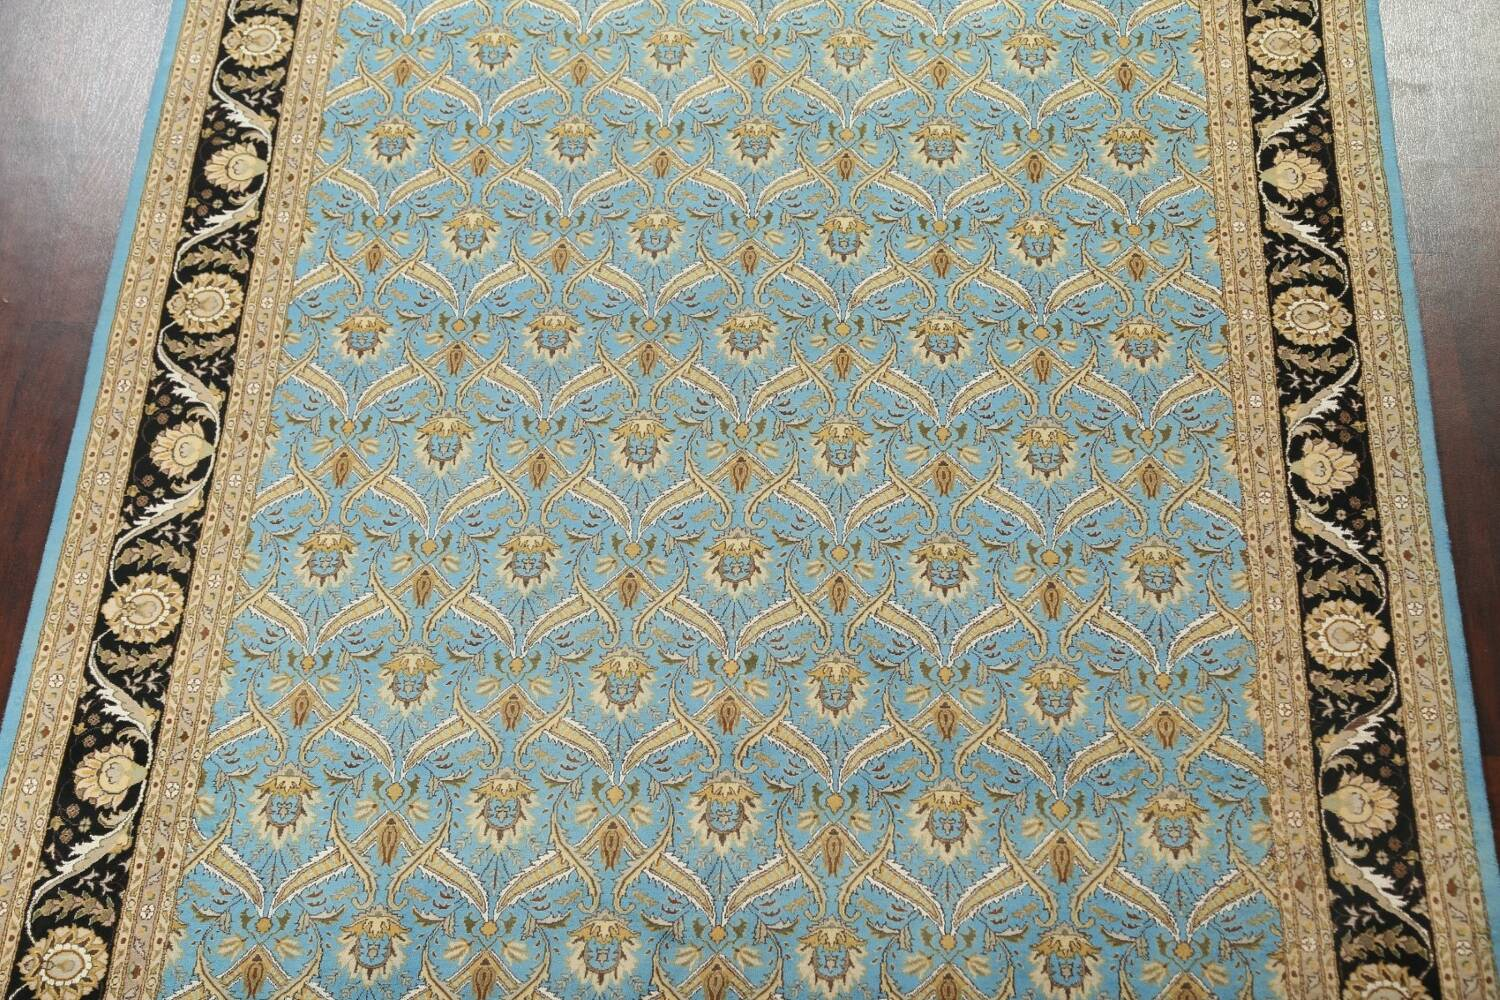 Vegetable Dye Aubusson Hand-Knotted Area Rug 8x10 image 3